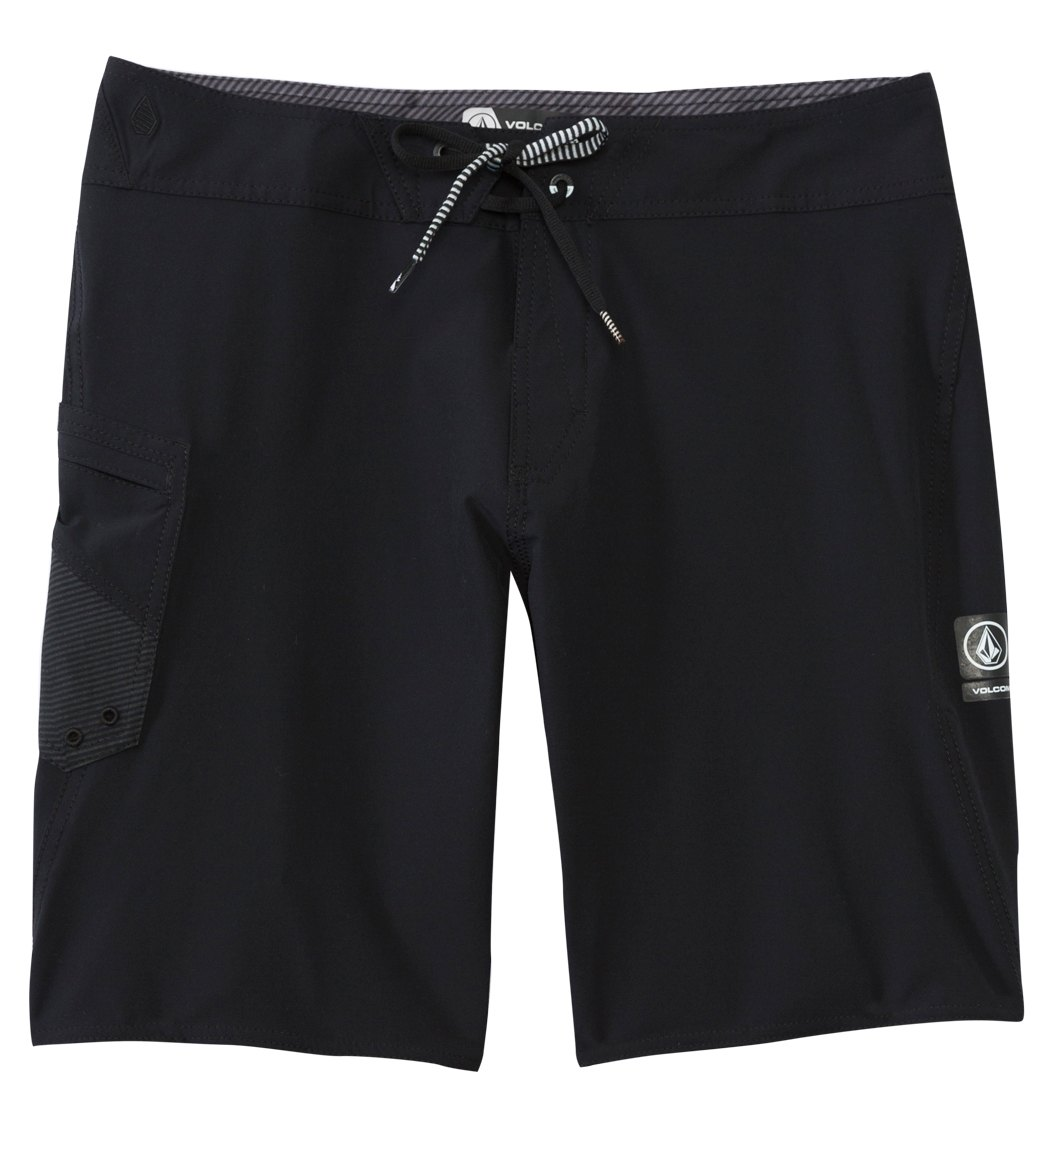 9ed7158b3e Volcom Men's Lido Solid Mod 20'' Boardshort at SwimOutlet.com